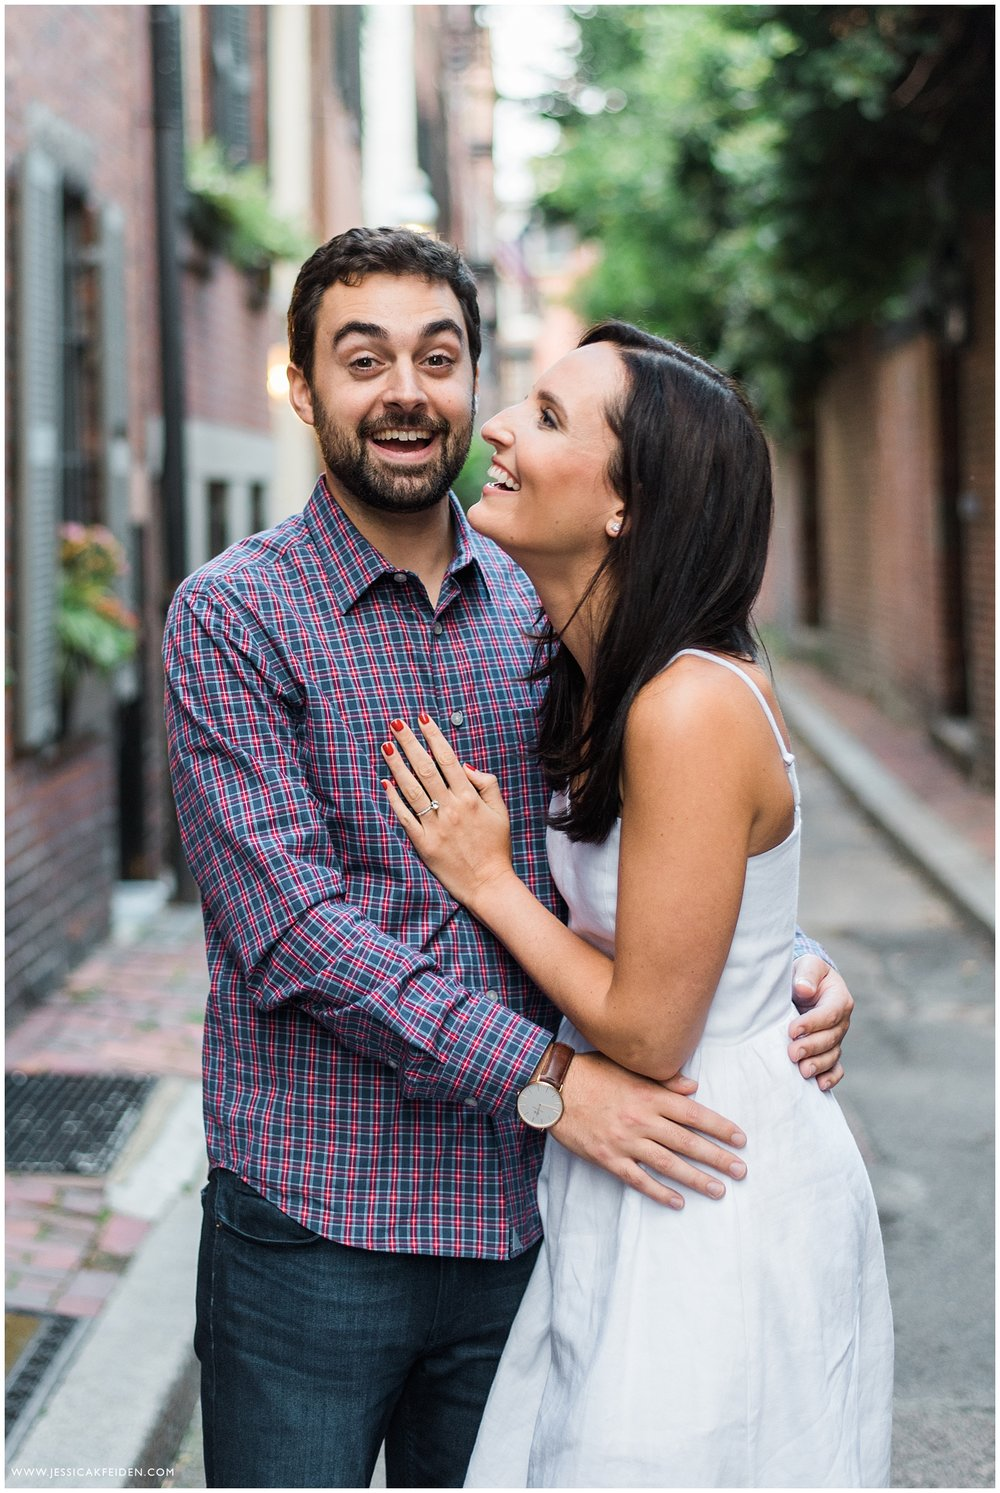 Jessica K Feiden Photography_Beacon Hill Boston Engagement Session Photographer_0001.jpg